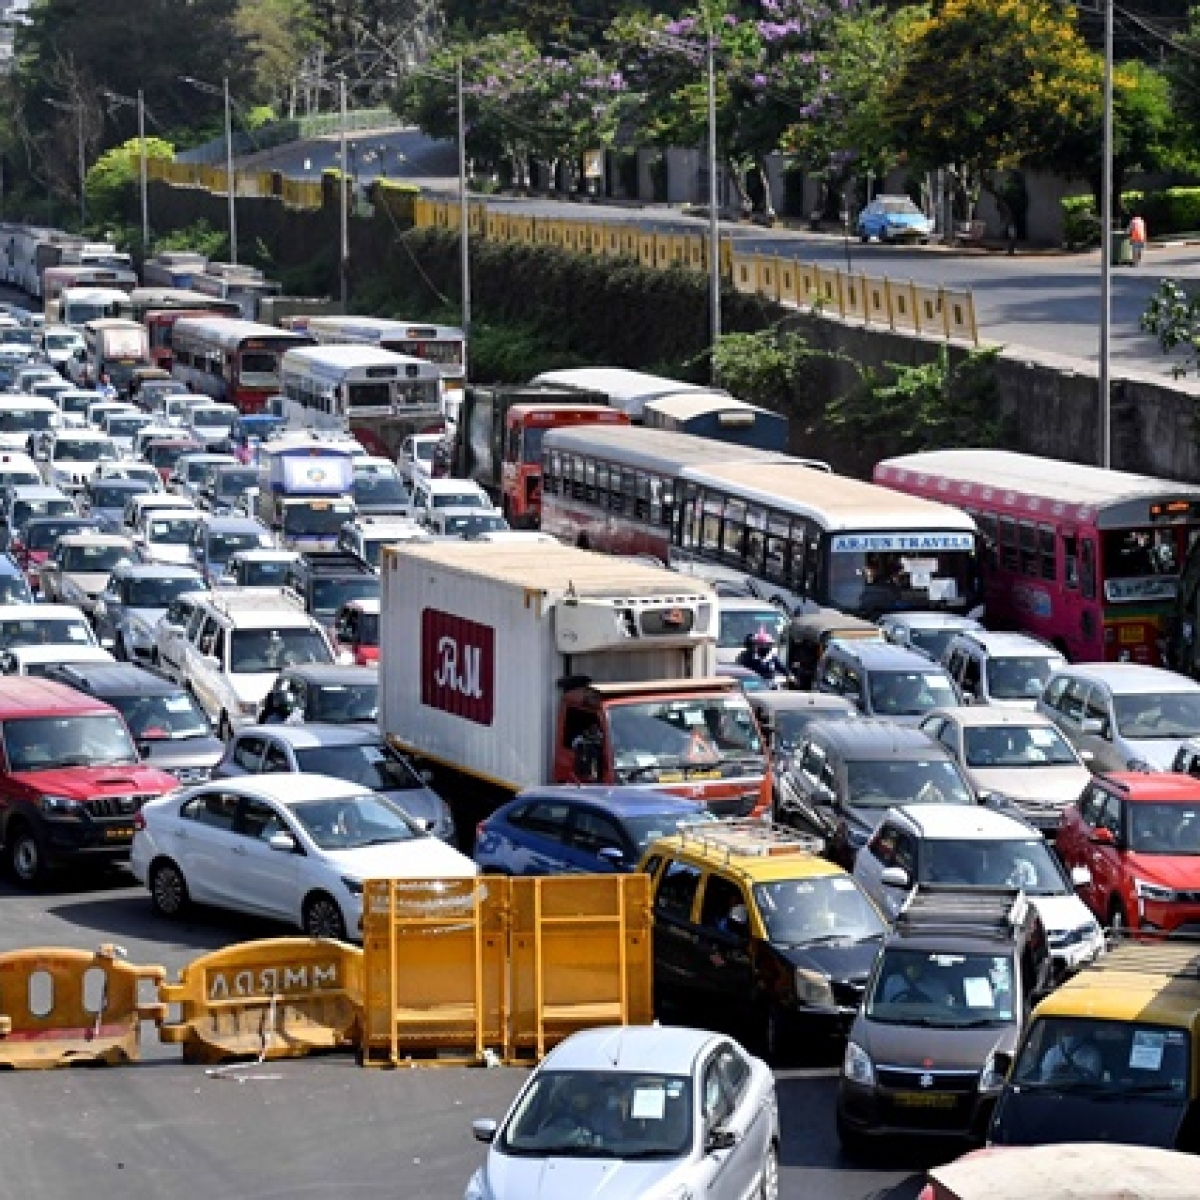 Concerns raised after picture of traffic jam in Mumbai circulate on social media during Lockdown 2.0